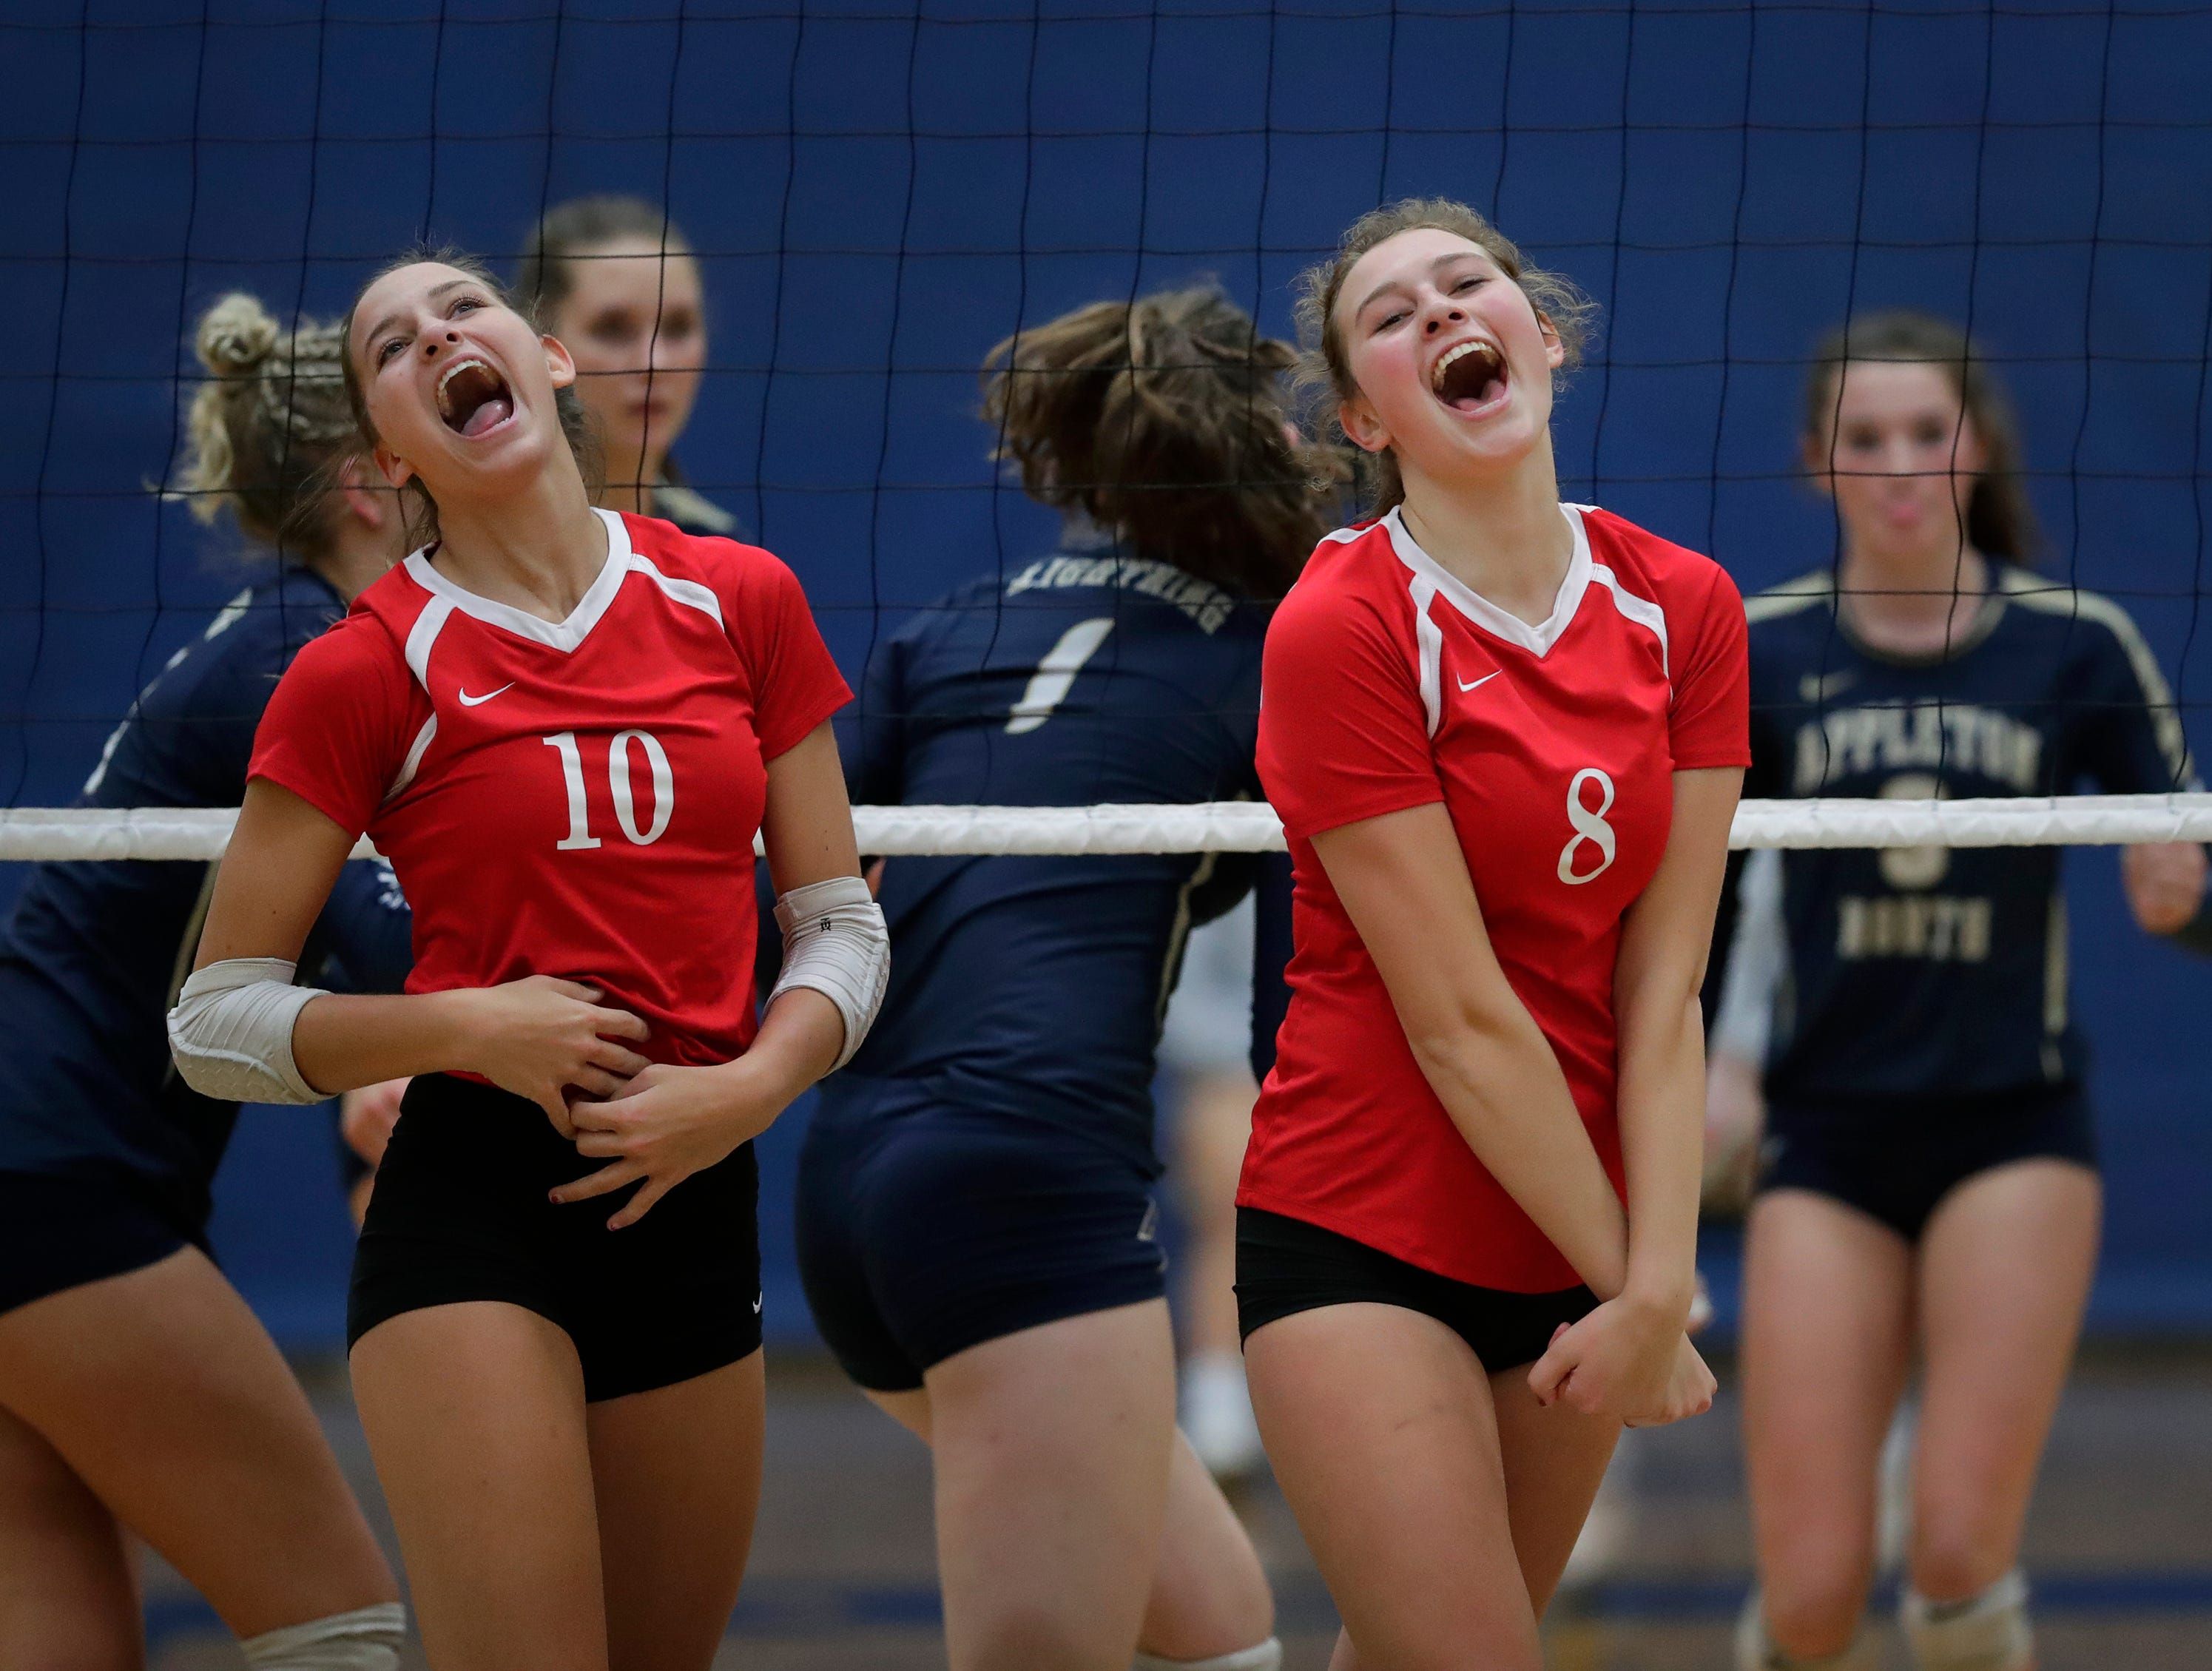 Kimberly High School's Courtney Pearson (10) and Carlee Doering (8) celebrate winning a point against Appleton North High School during their girls volleyball match Thursday, Sept. 27, 2018, in Appleton, Wis. 